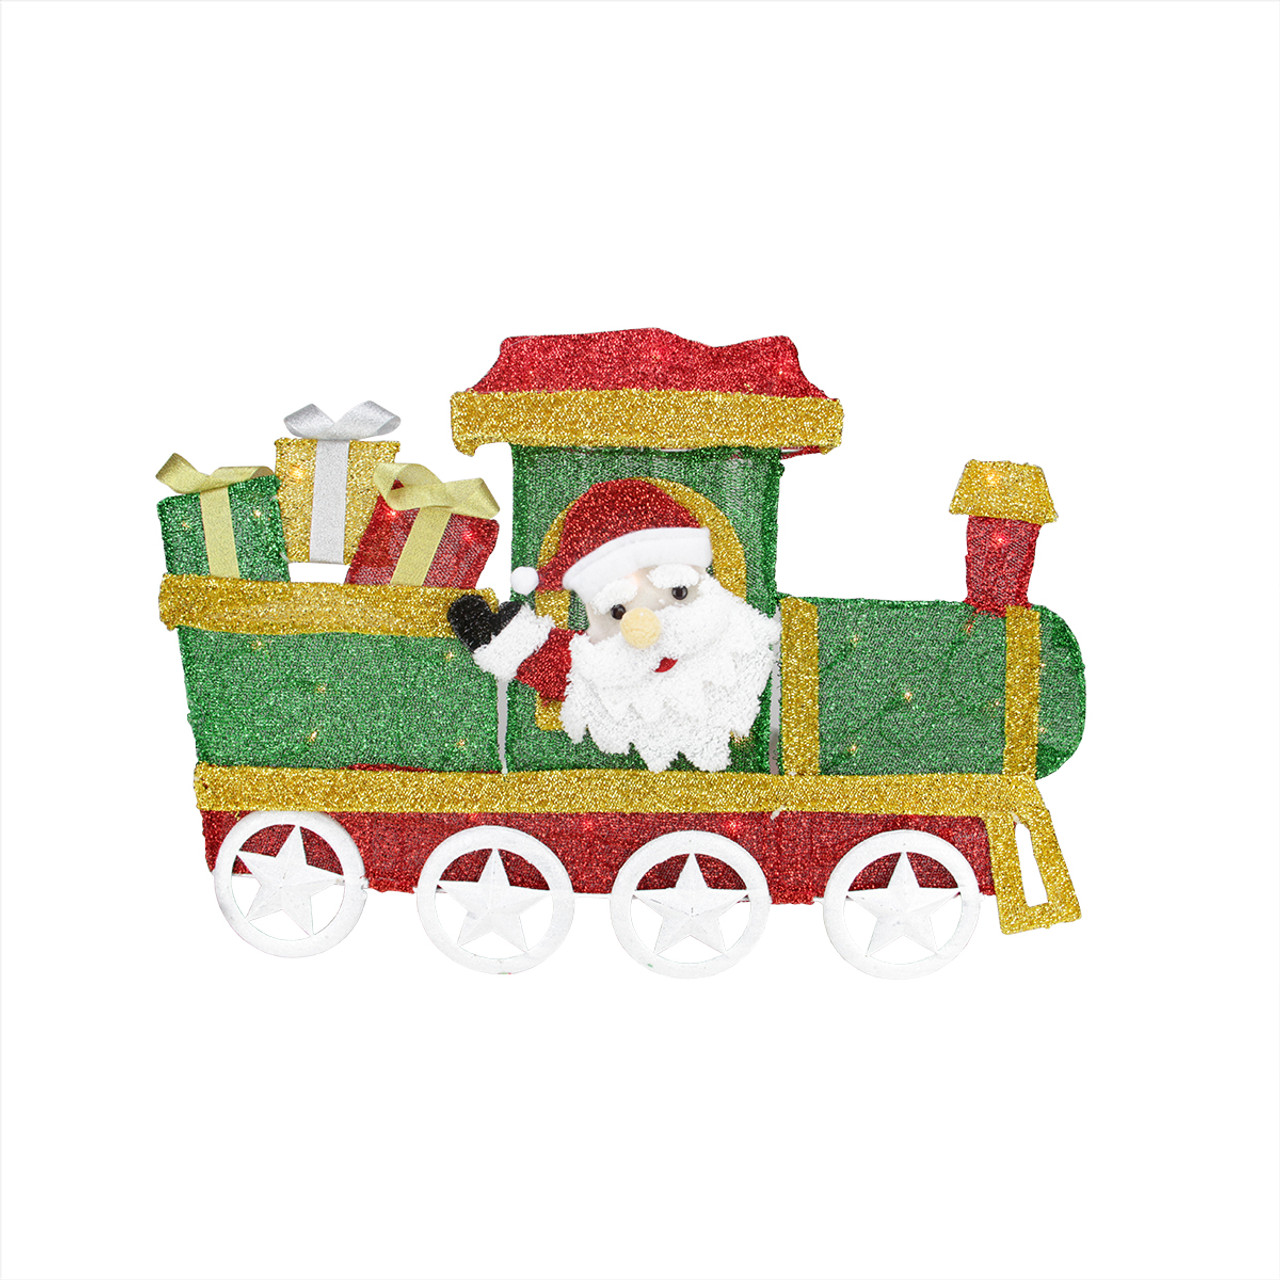 30 lighted tinsel choo choo train locomotive with santa claus christmas outdoor decoration 31458121 - Santa Train Outdoor Christmas Decoration